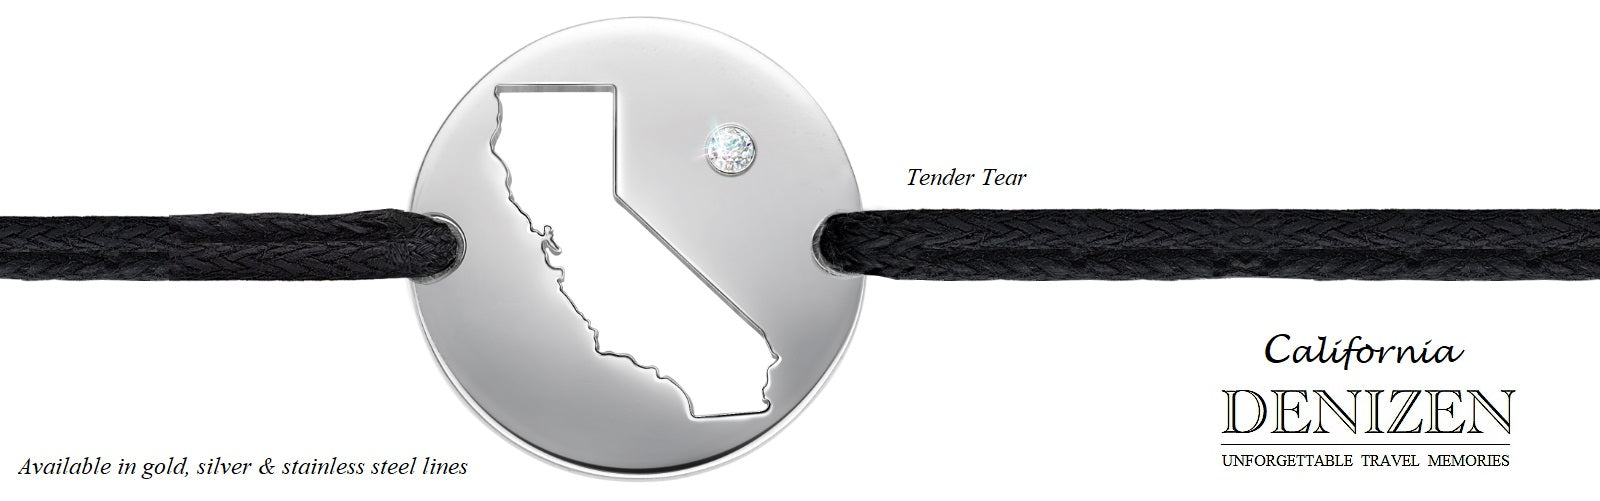 DENIZEN jewelry - bracelet of California